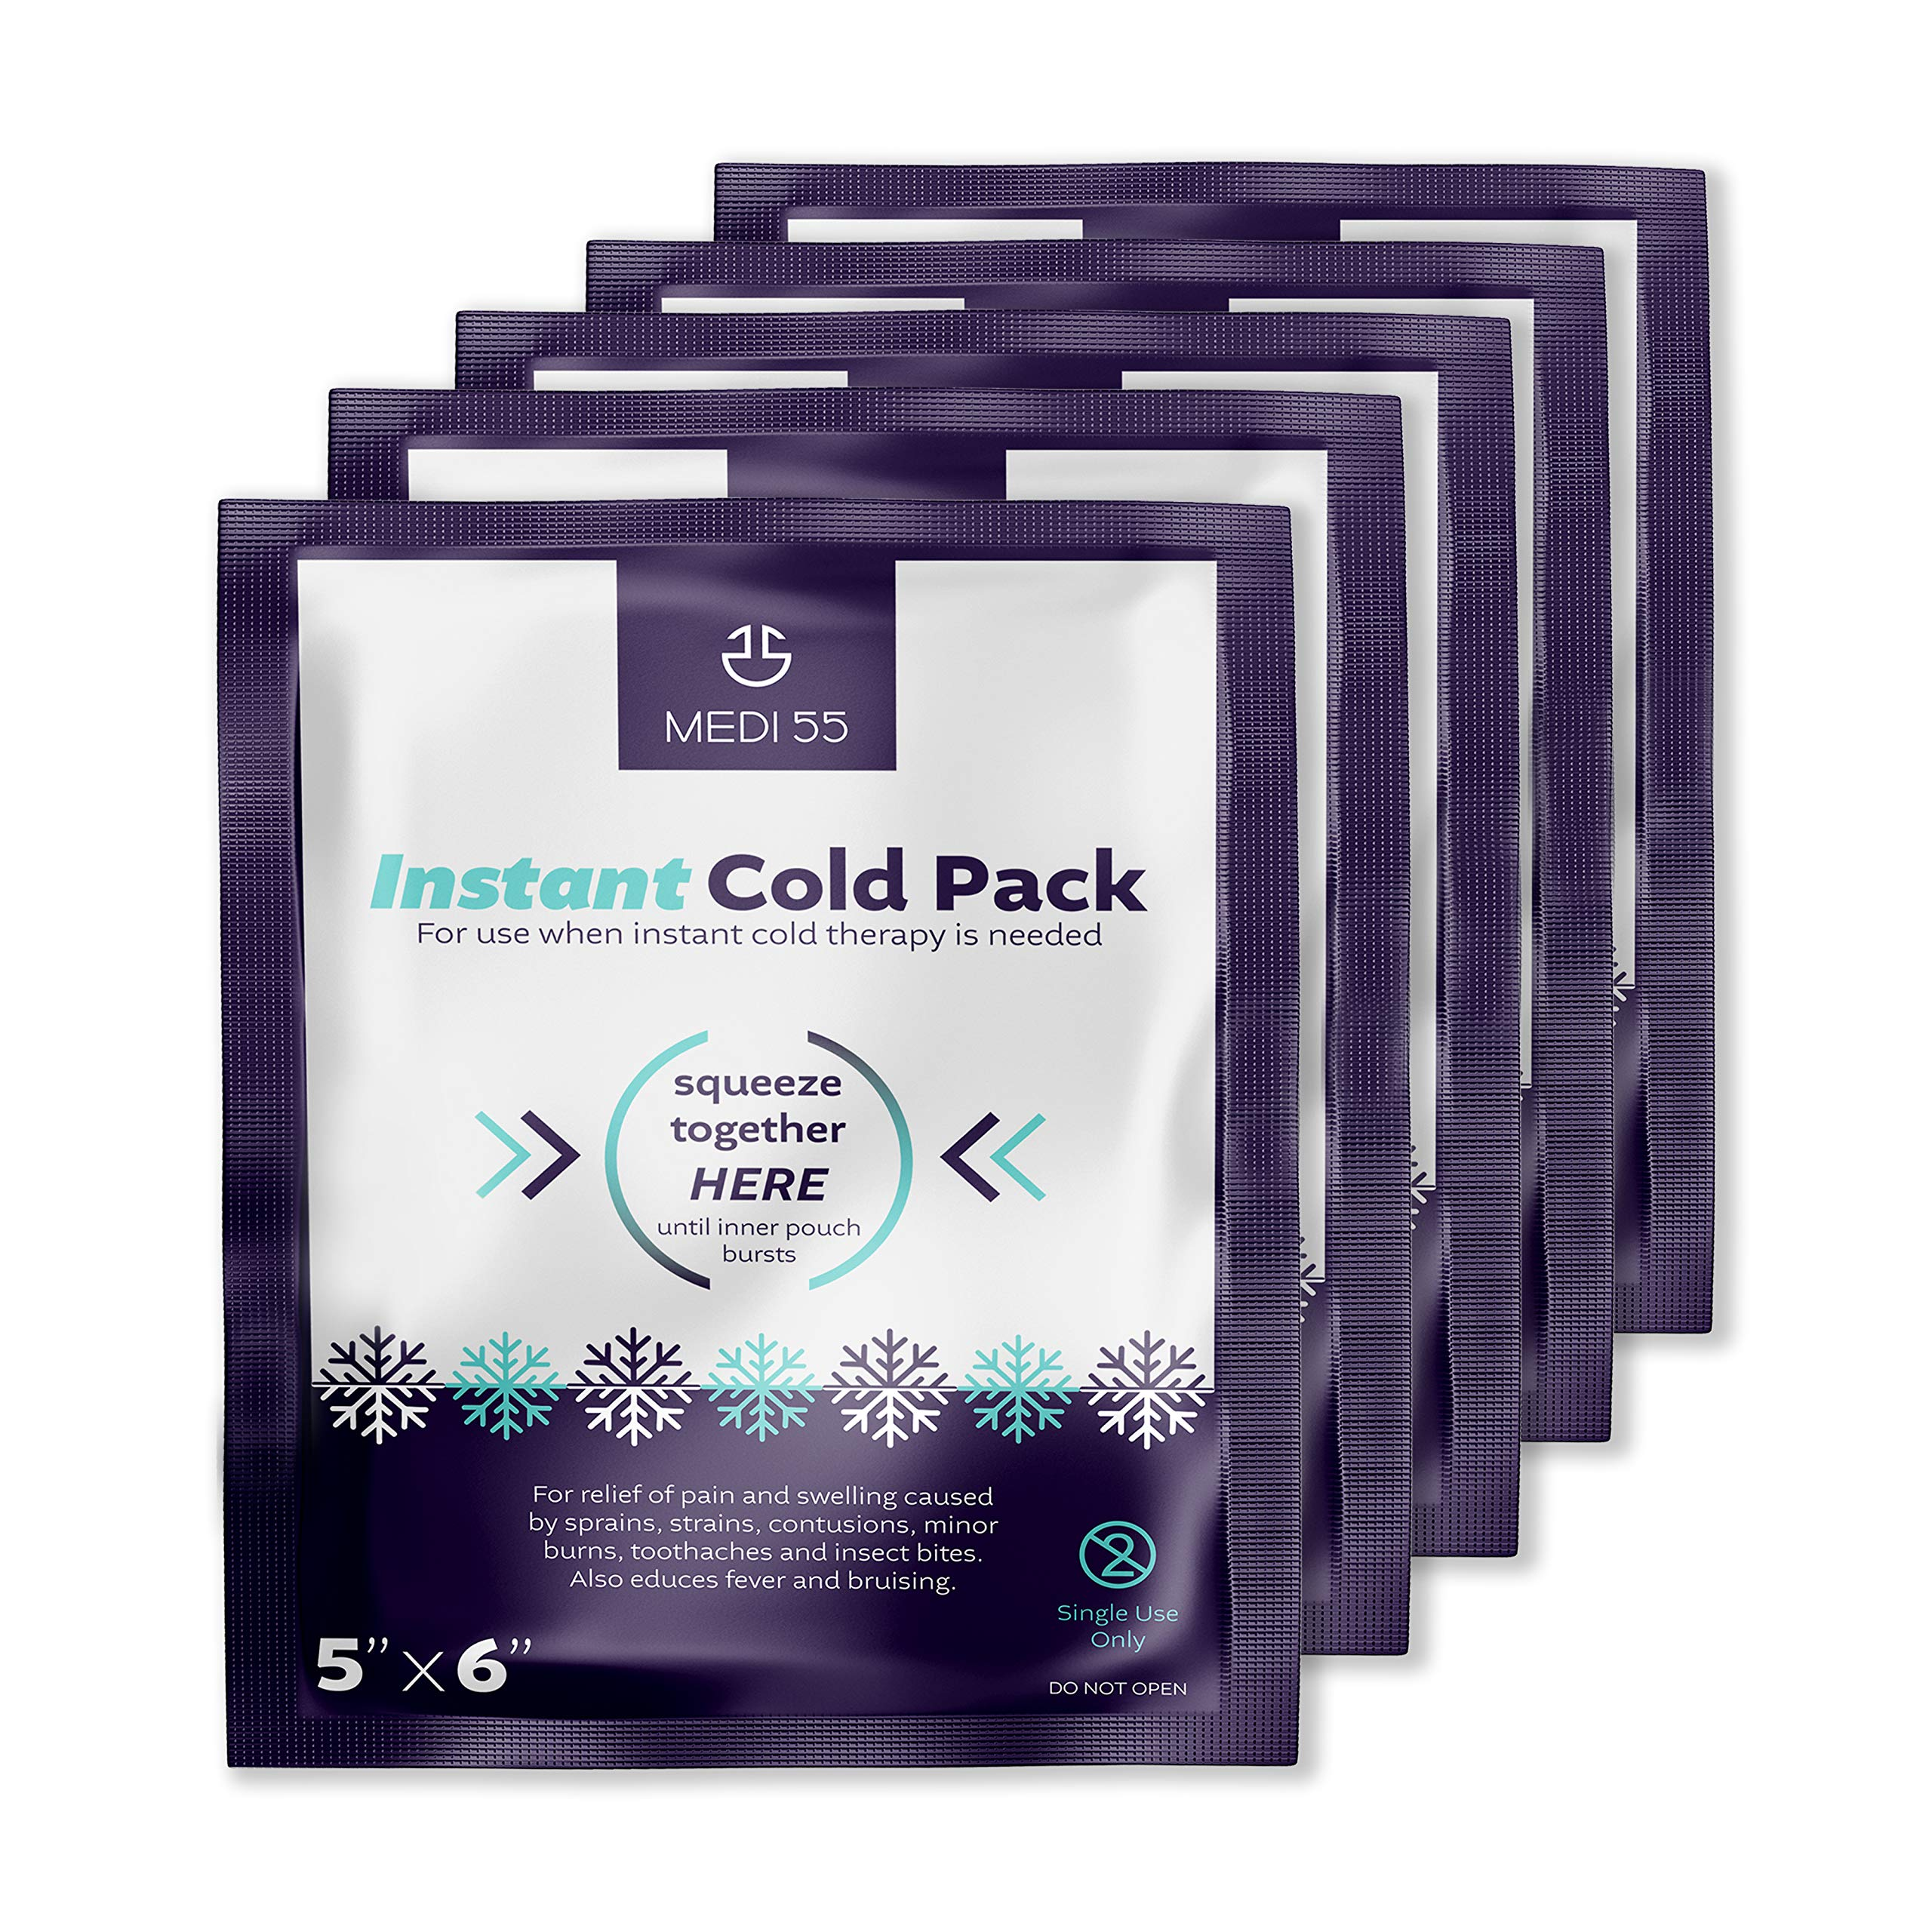 """Instant Cold Packs - Pack of 24 (5"""" x 6"""") Disposable Cold Compress Therapy Instant Ice Pack for Injuries, First Aid, Pain Relief for Tooth Aches, Swelling, Sprains, Bruises, Insect Bites"""